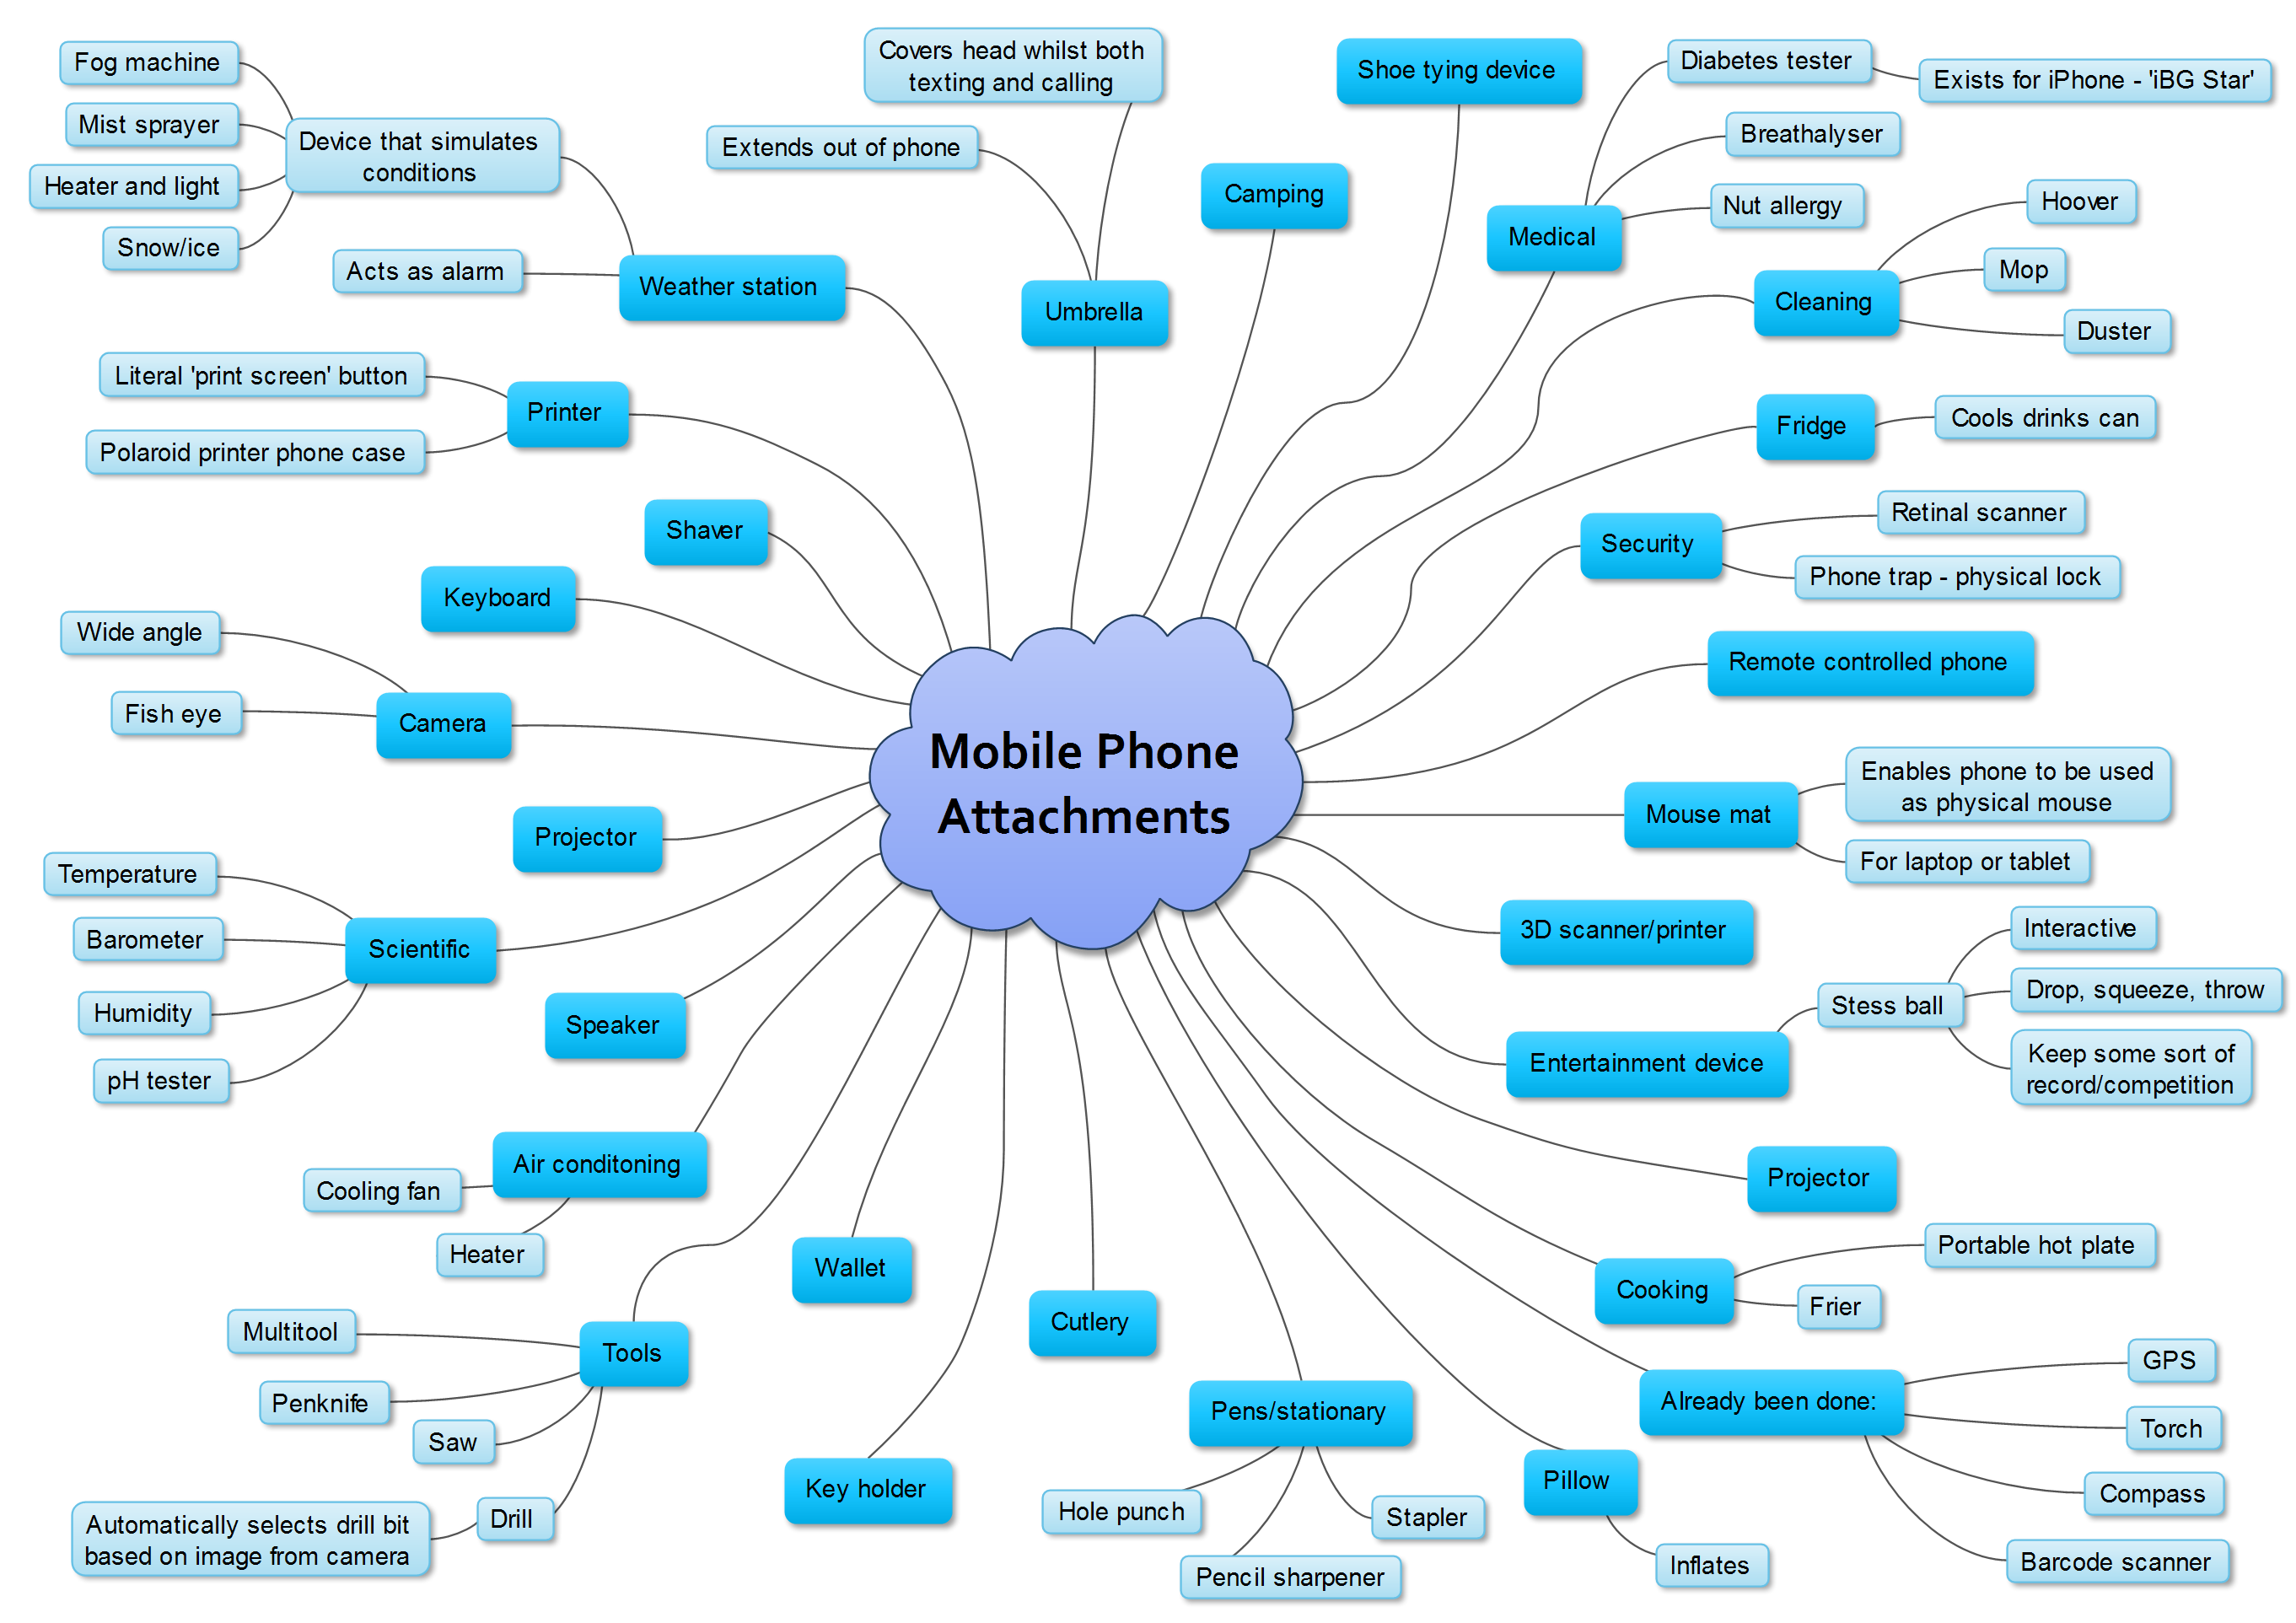 Mind map for the mobile phone symbiosis brief.